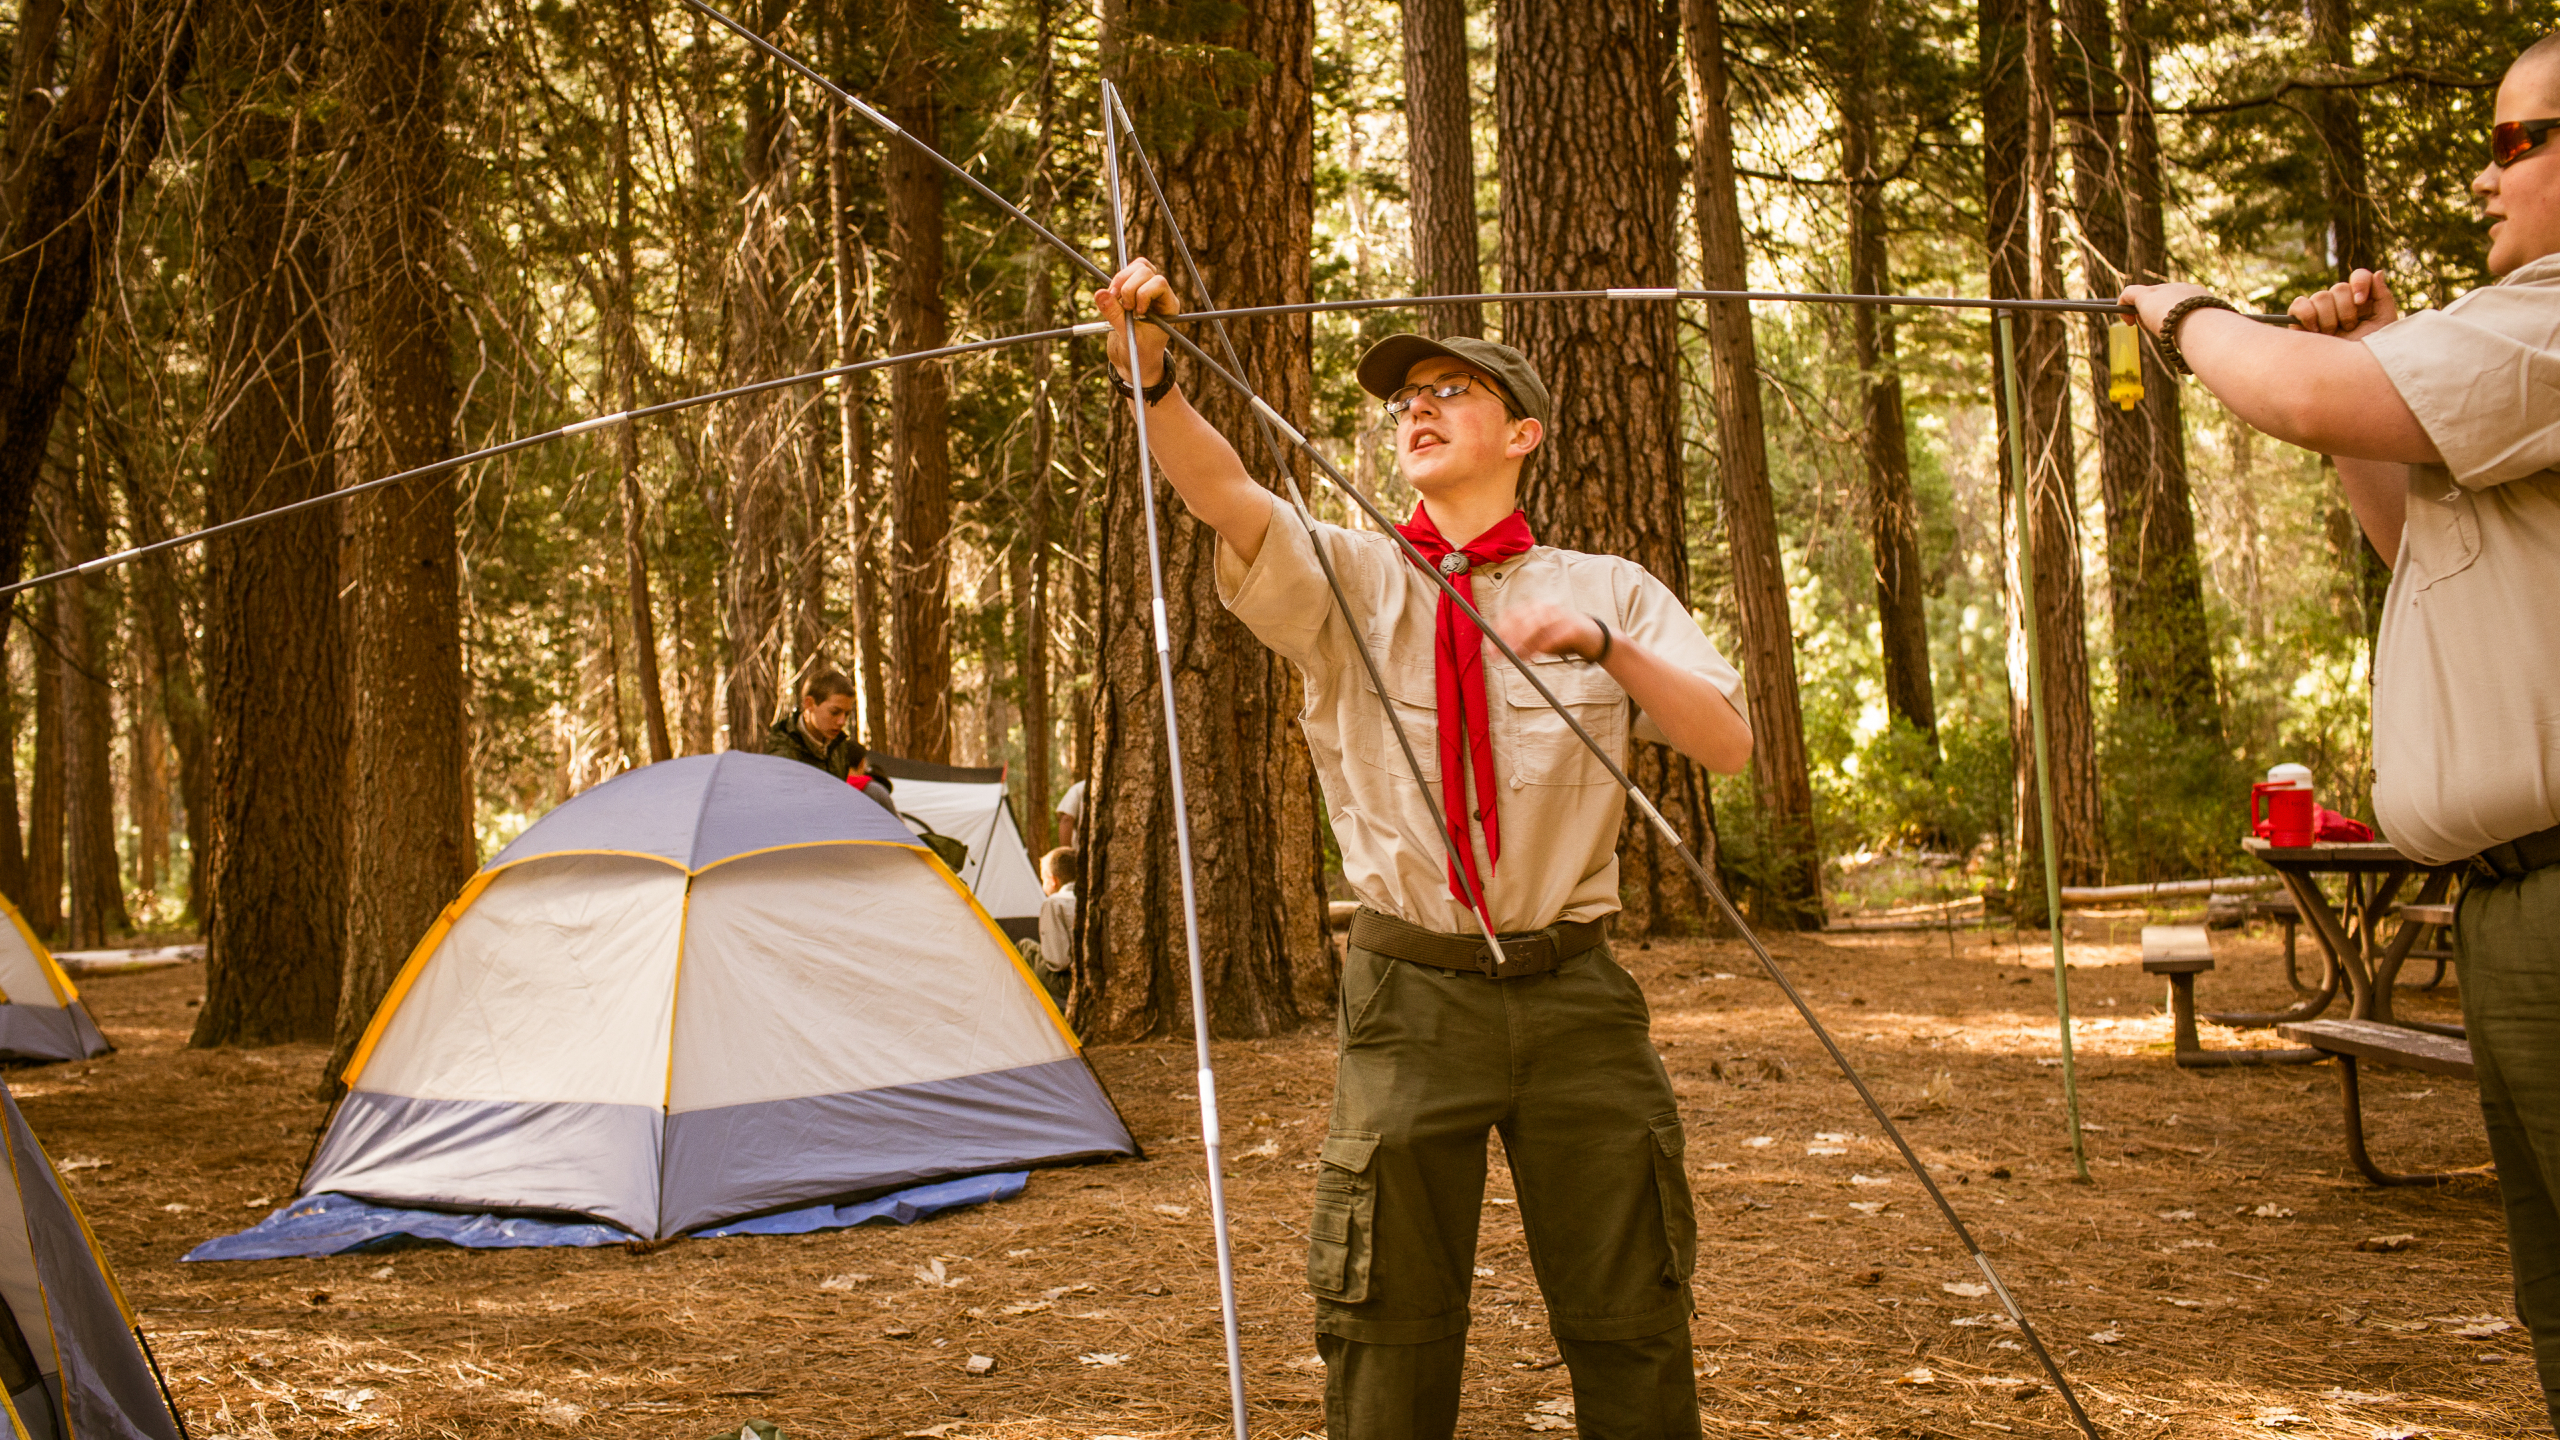 Boy Scouts C 1930 With Tent Pitched And The & Tent Boy - Best Tent 2018